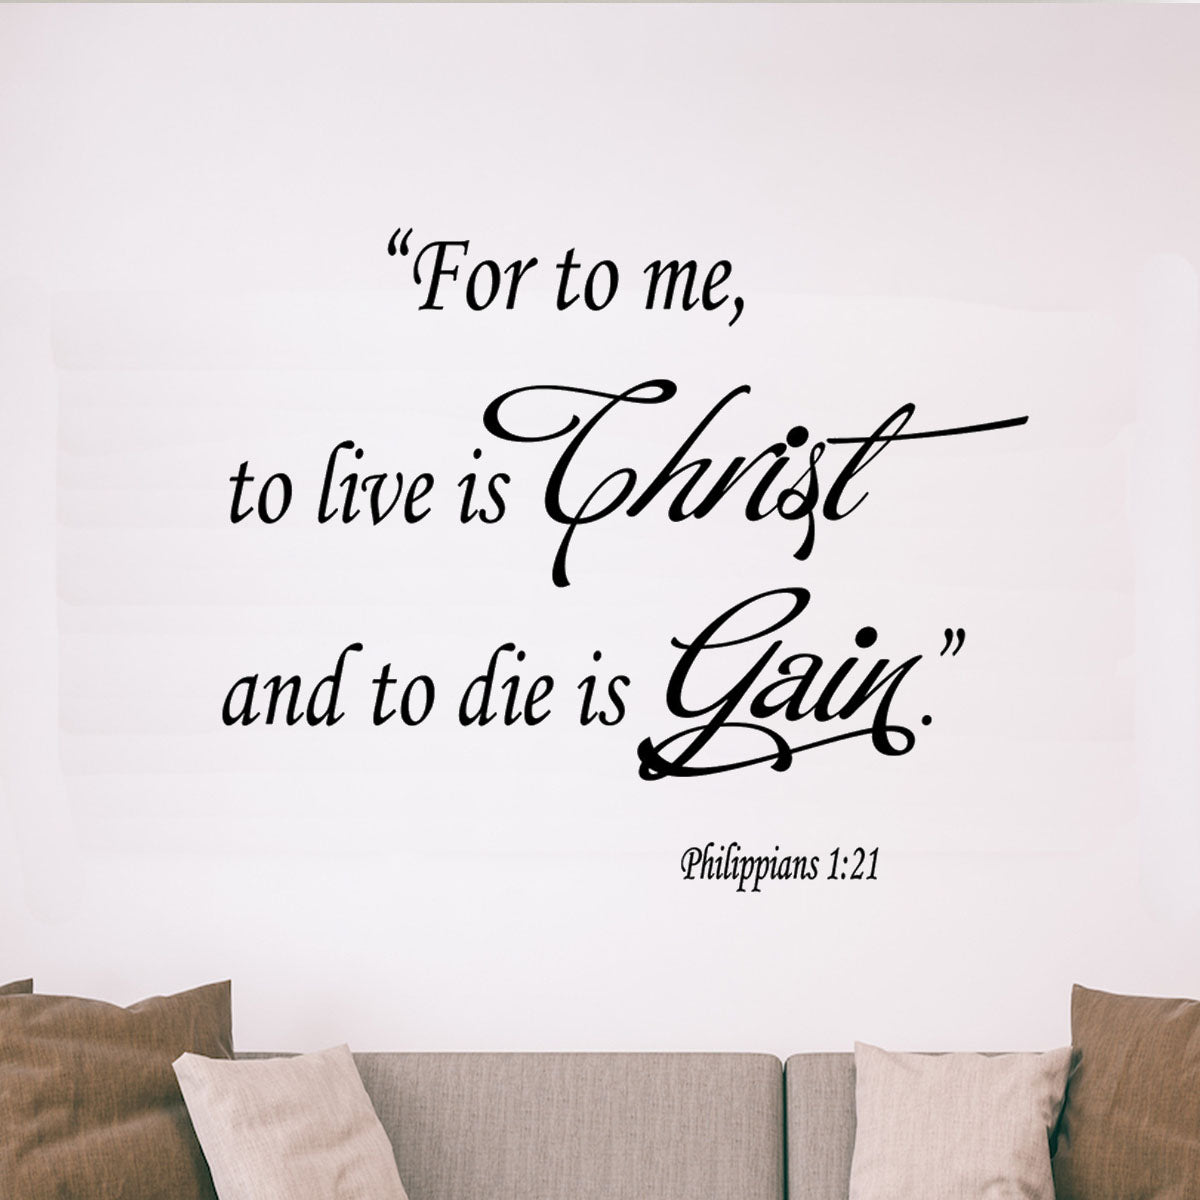 VWAQ for to Me to Live is Christ Philippians 1:21 Bible Verse Wall Decals VWAQ-6512 - VWAQ Vinyl Wall Art Quotes and Prints